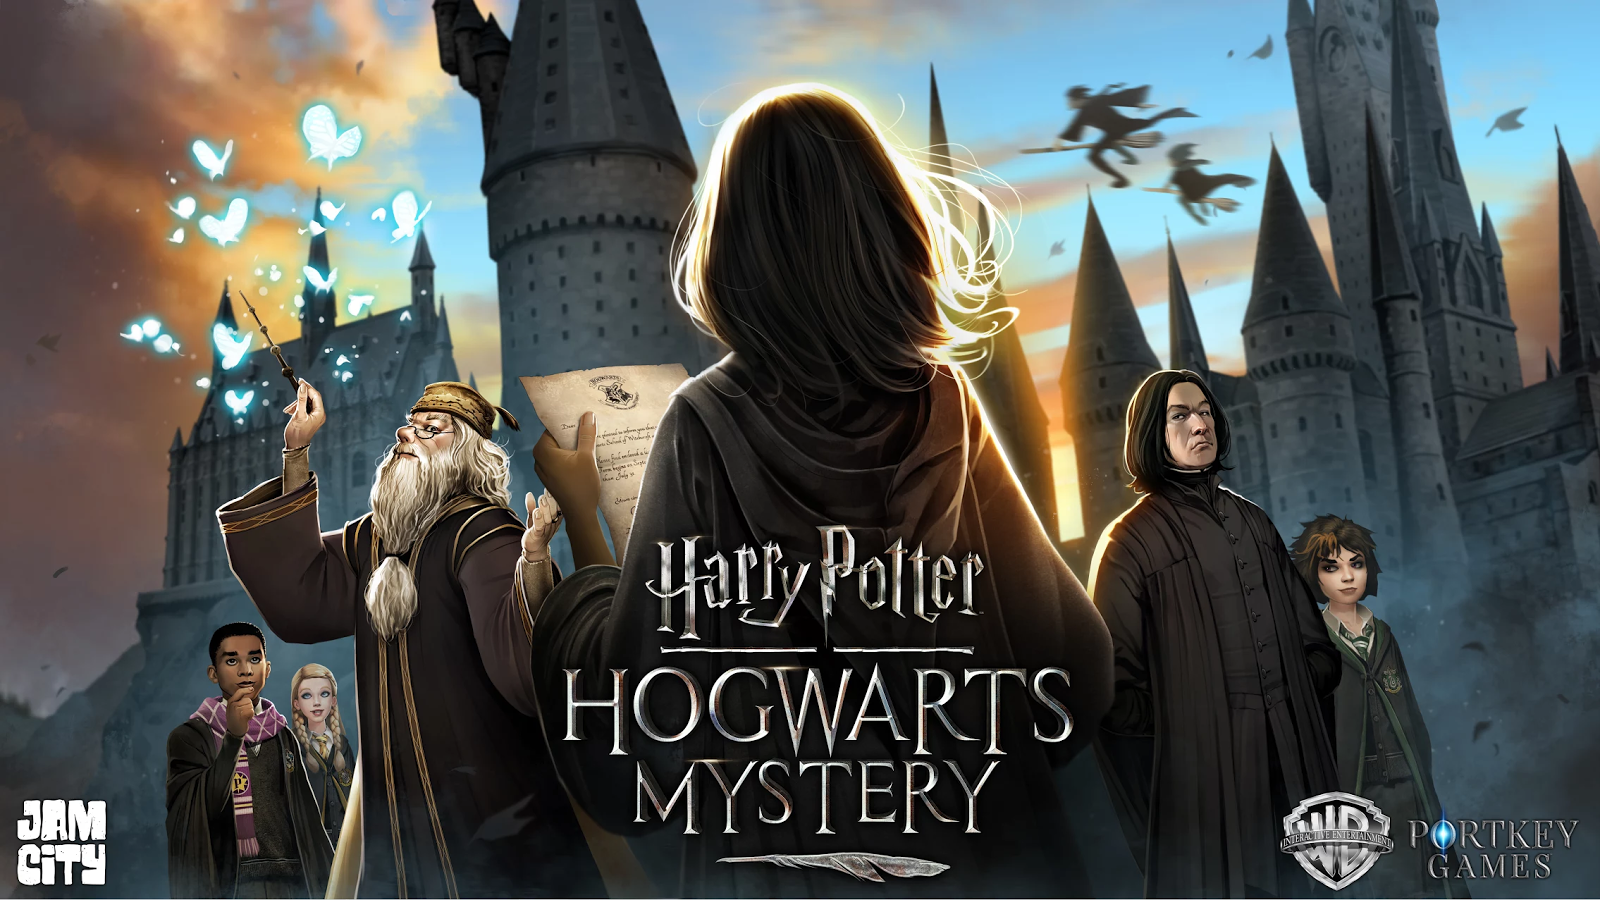 New Harry Potter game, launching today, lets players enroll in